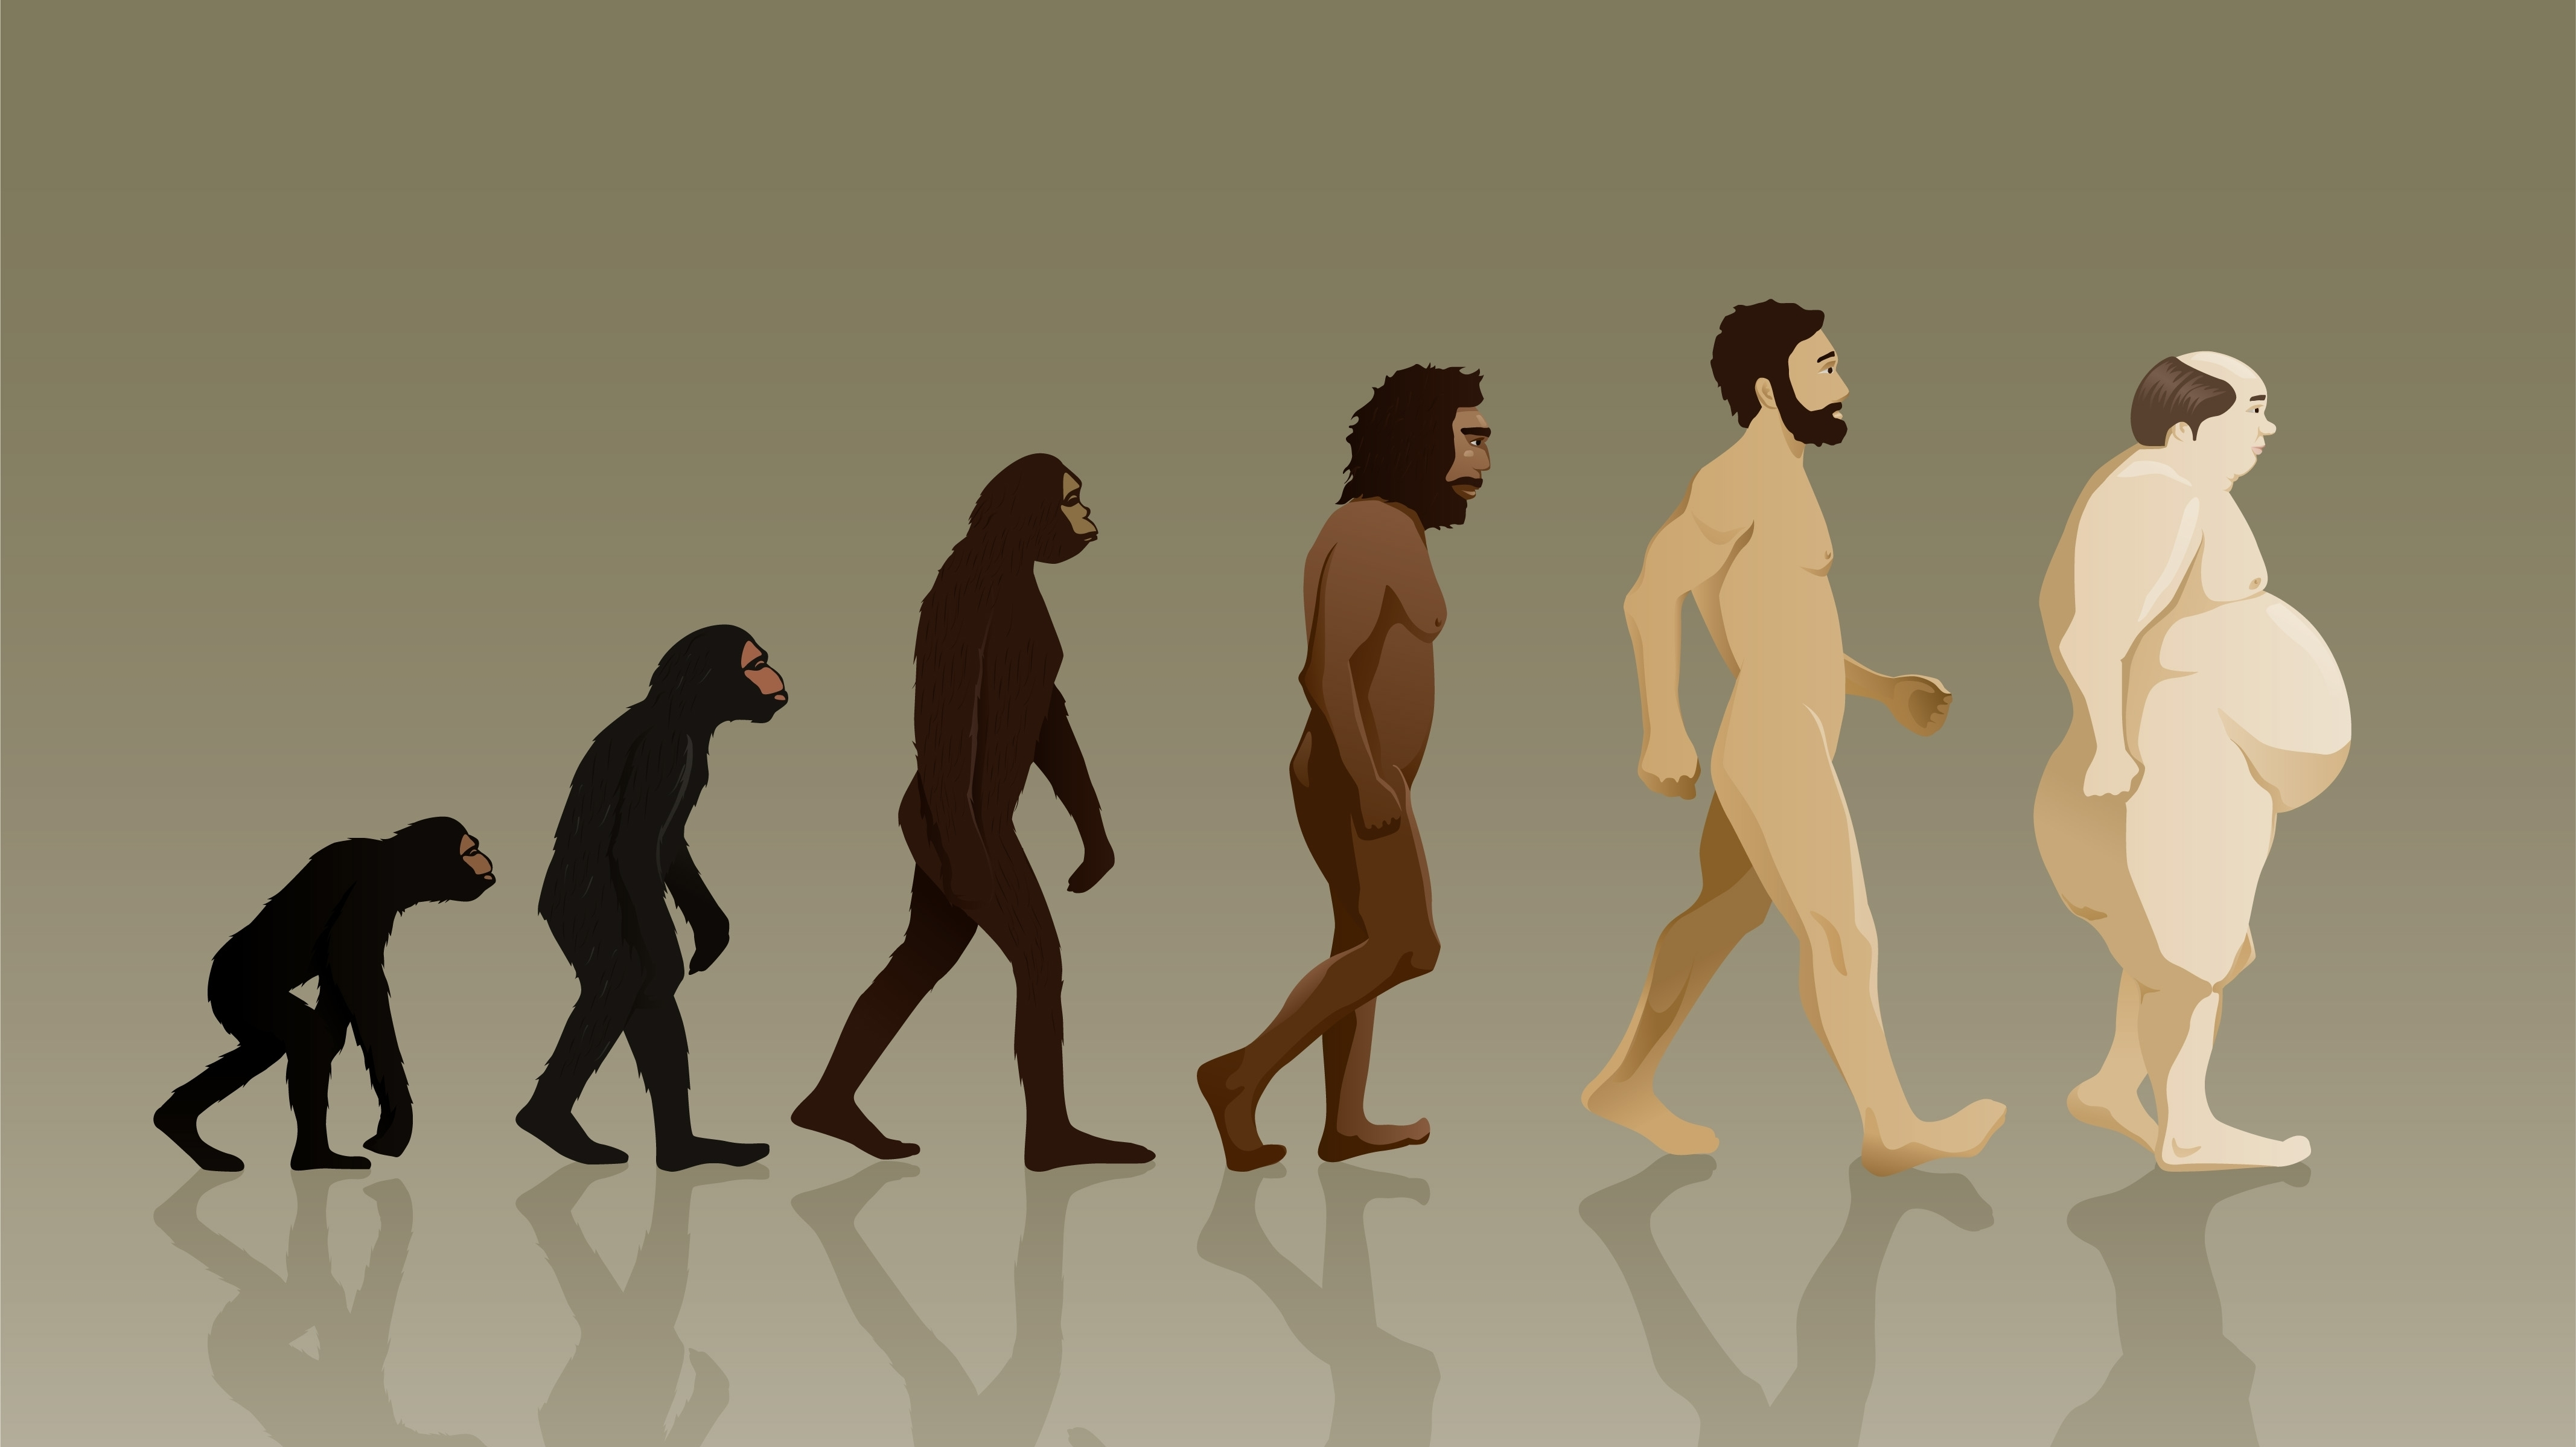 Racialized Representations of Evolution - Sociological Images